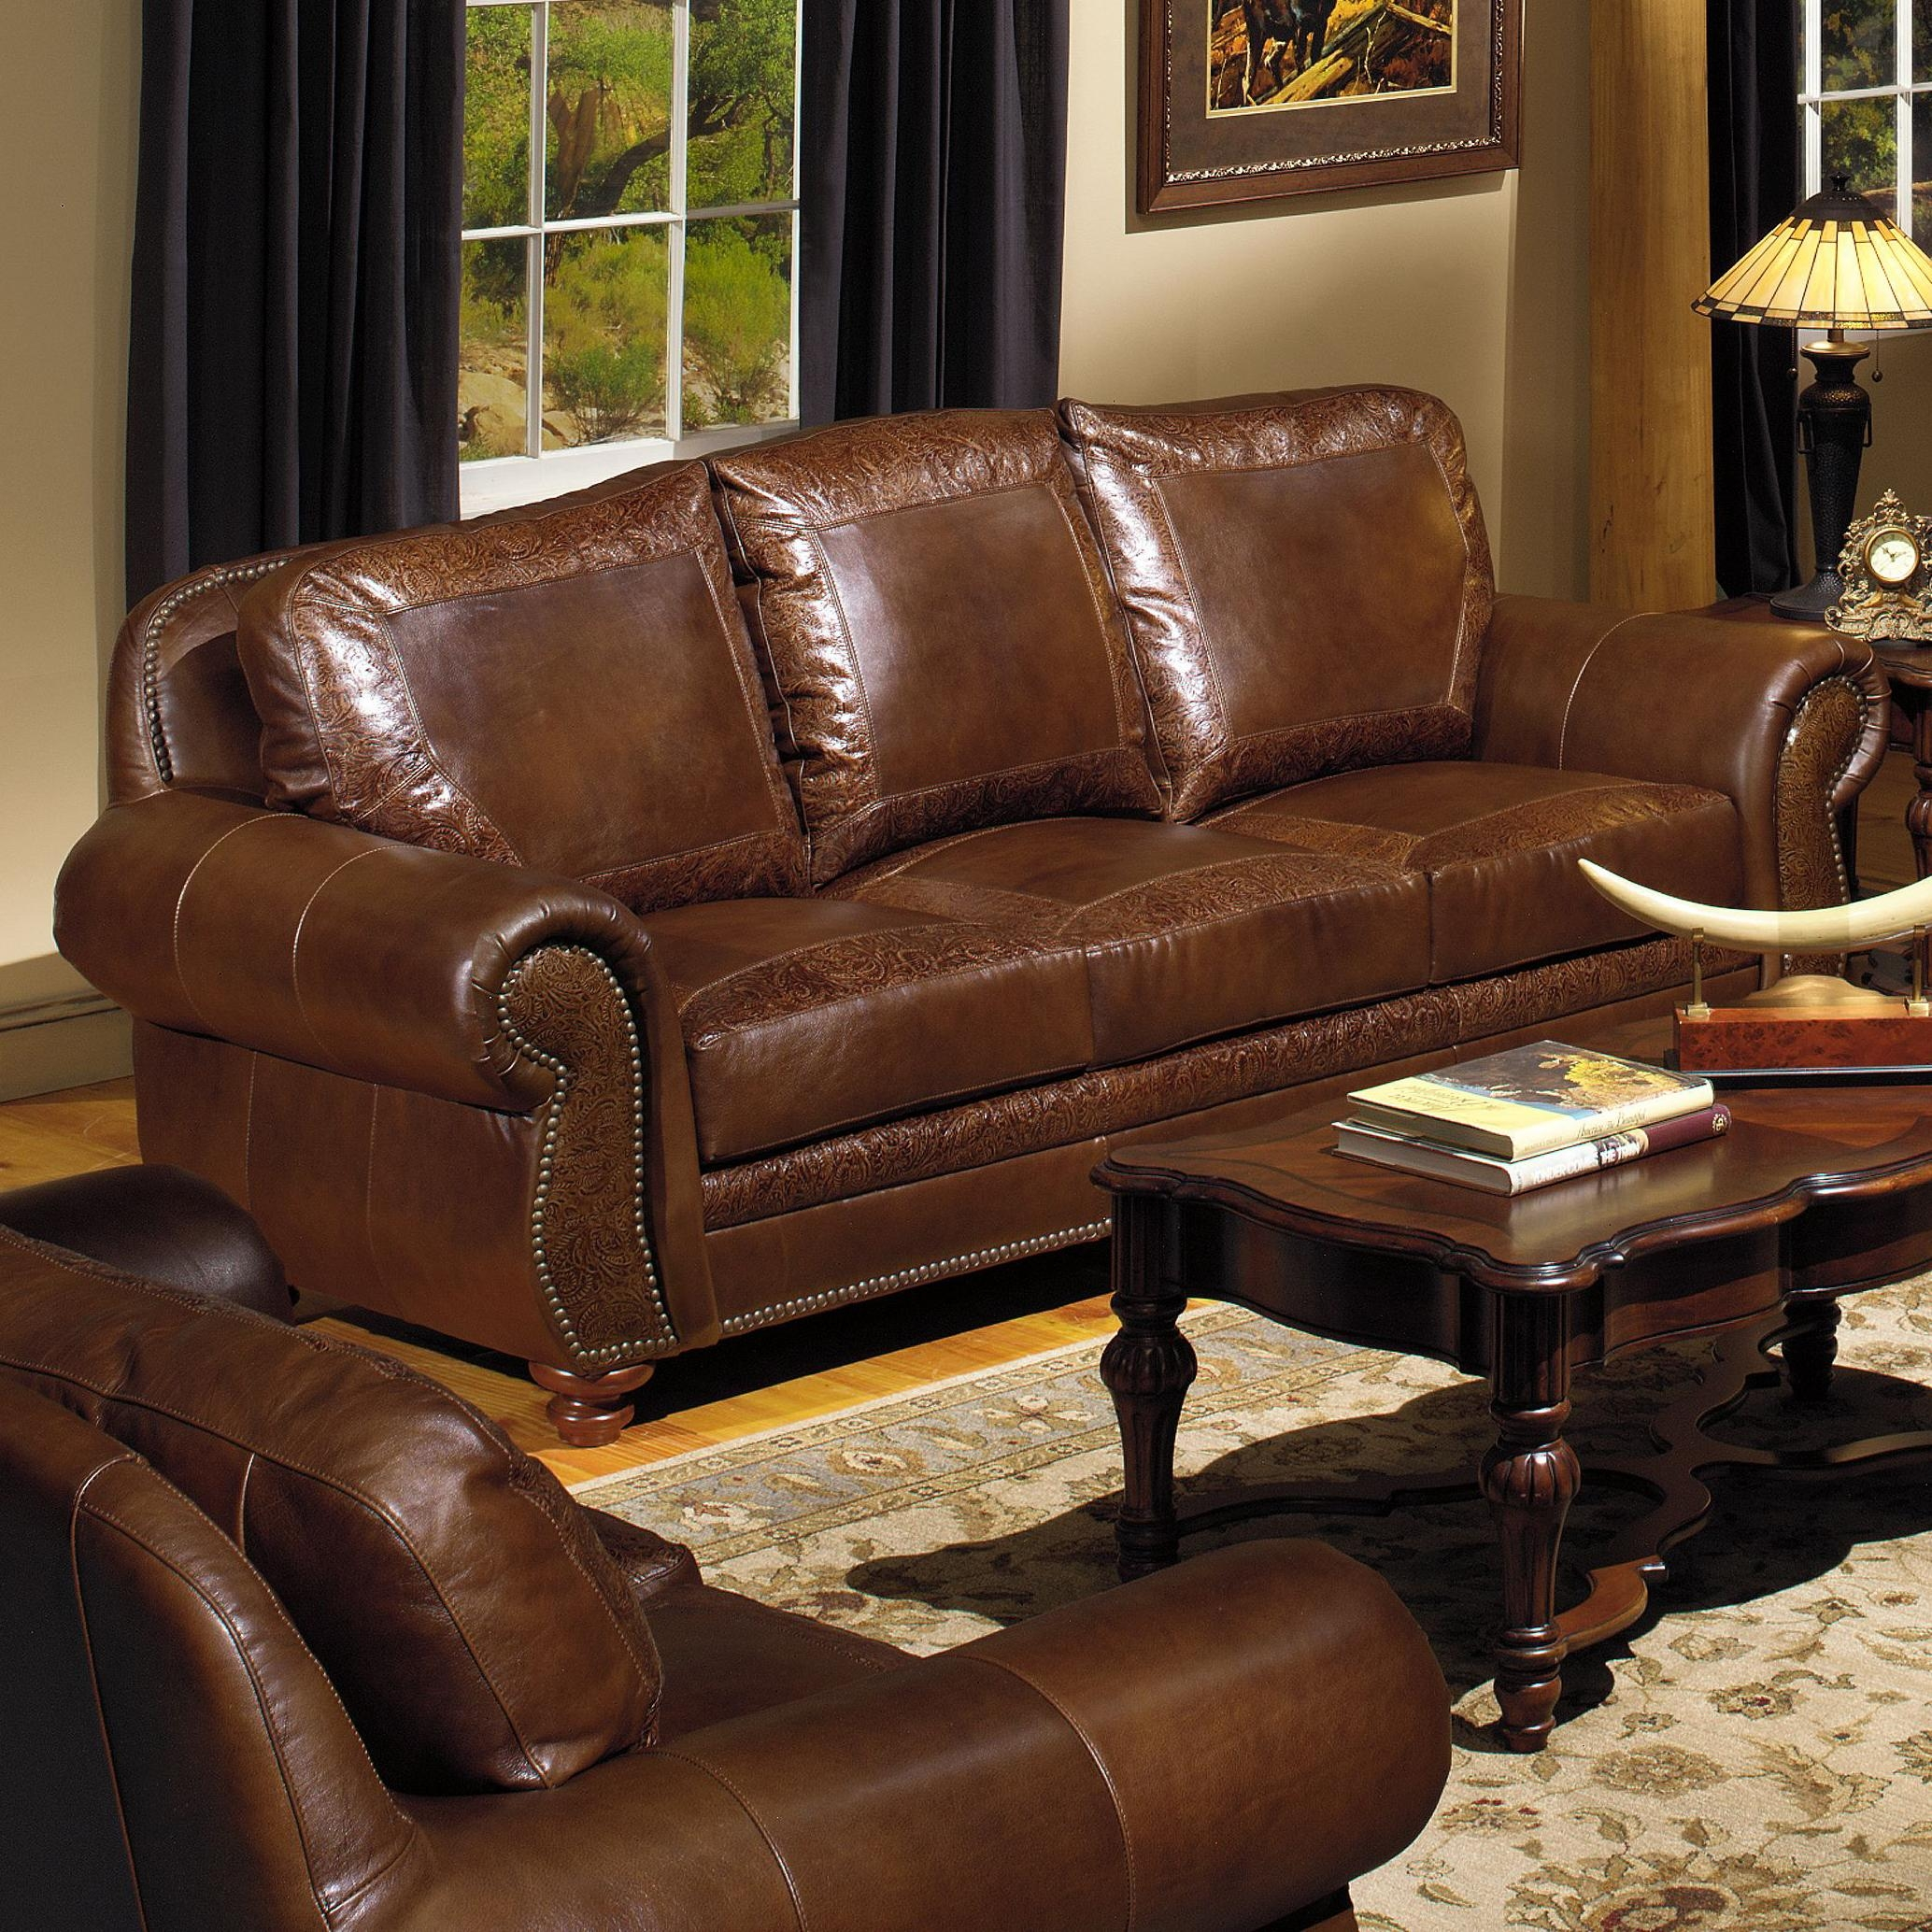 Usa Premium Leather 8555 Traditional Leather Sofa With Nailhead With Regard To Traditional Leather Couch (Image 15 of 15)